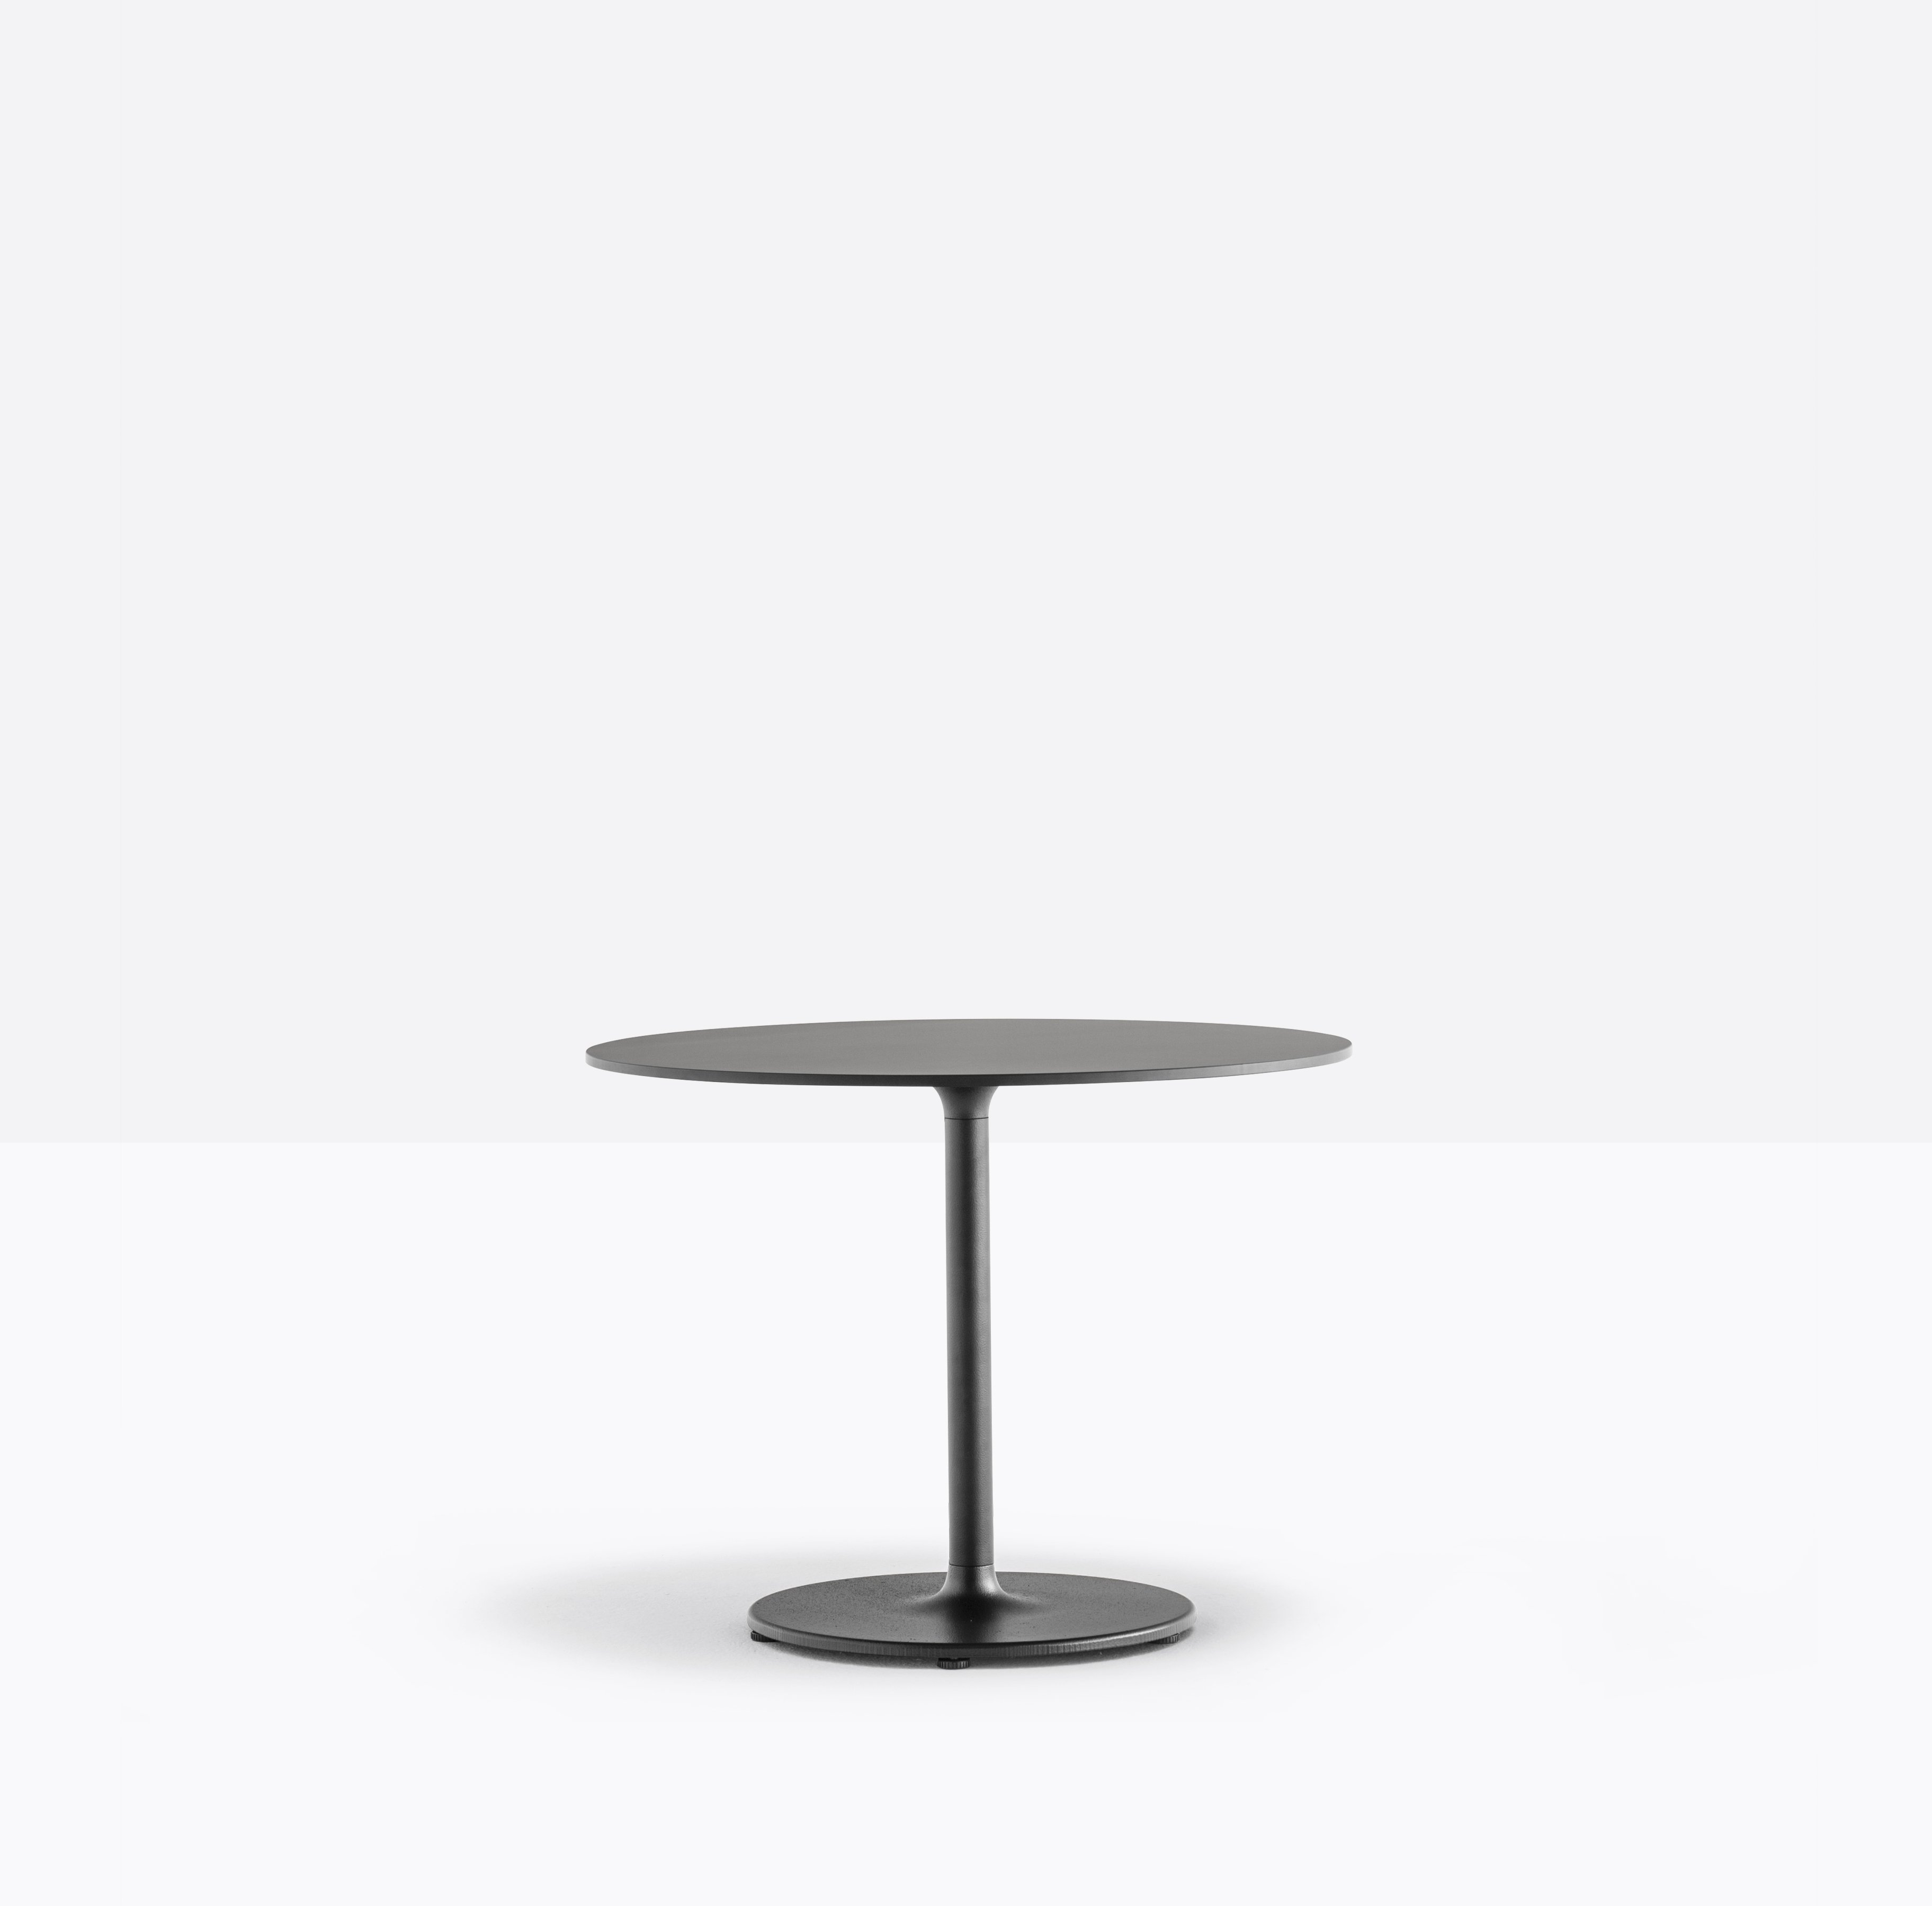 Stylus 5402 Table dining from Pedrali, designed by Pedrali R&D